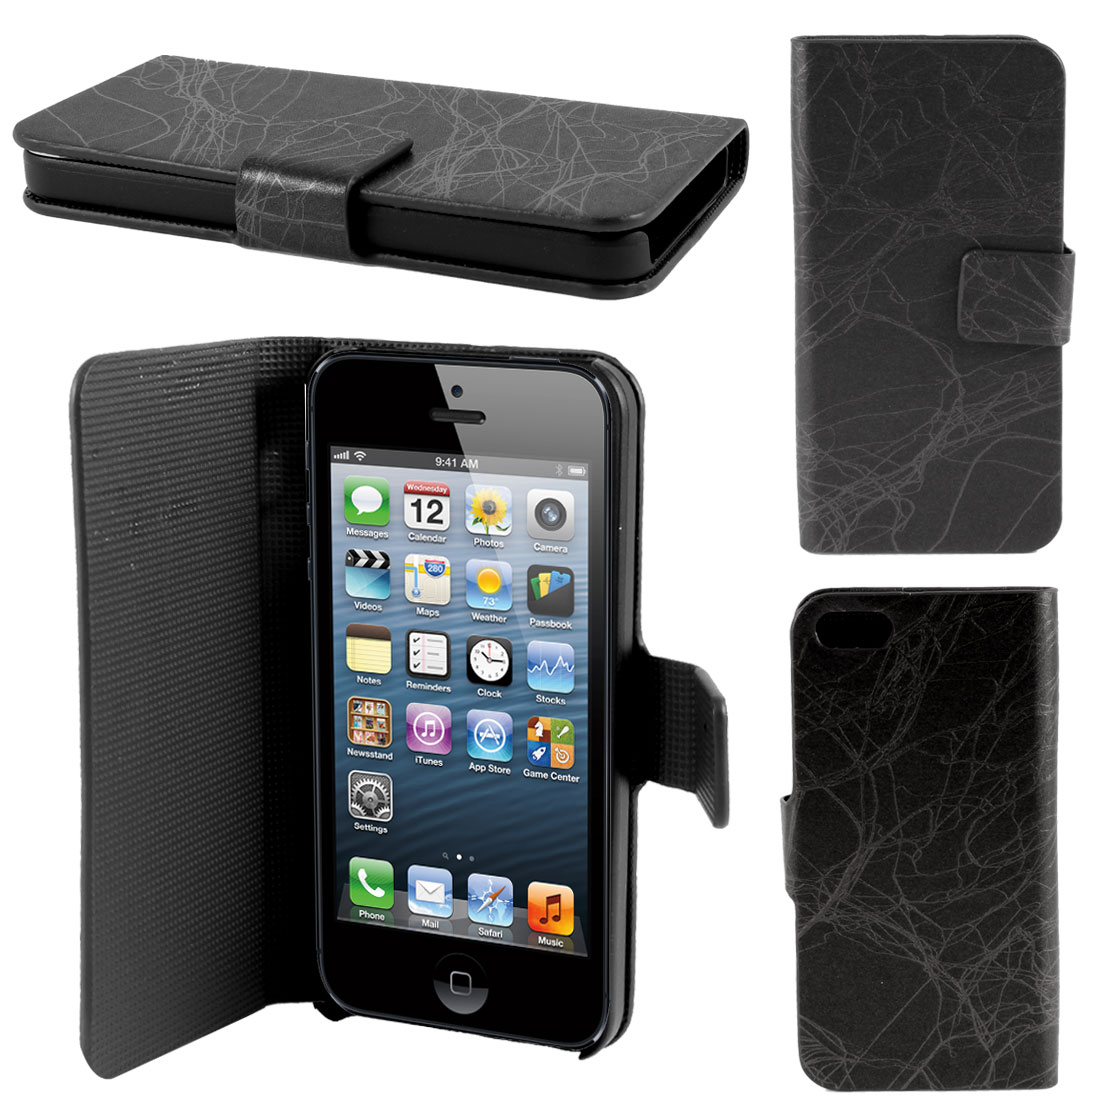 Black Lightning Print PU Leather Flip Case Cover Protector for iPhone 5 5G 5th